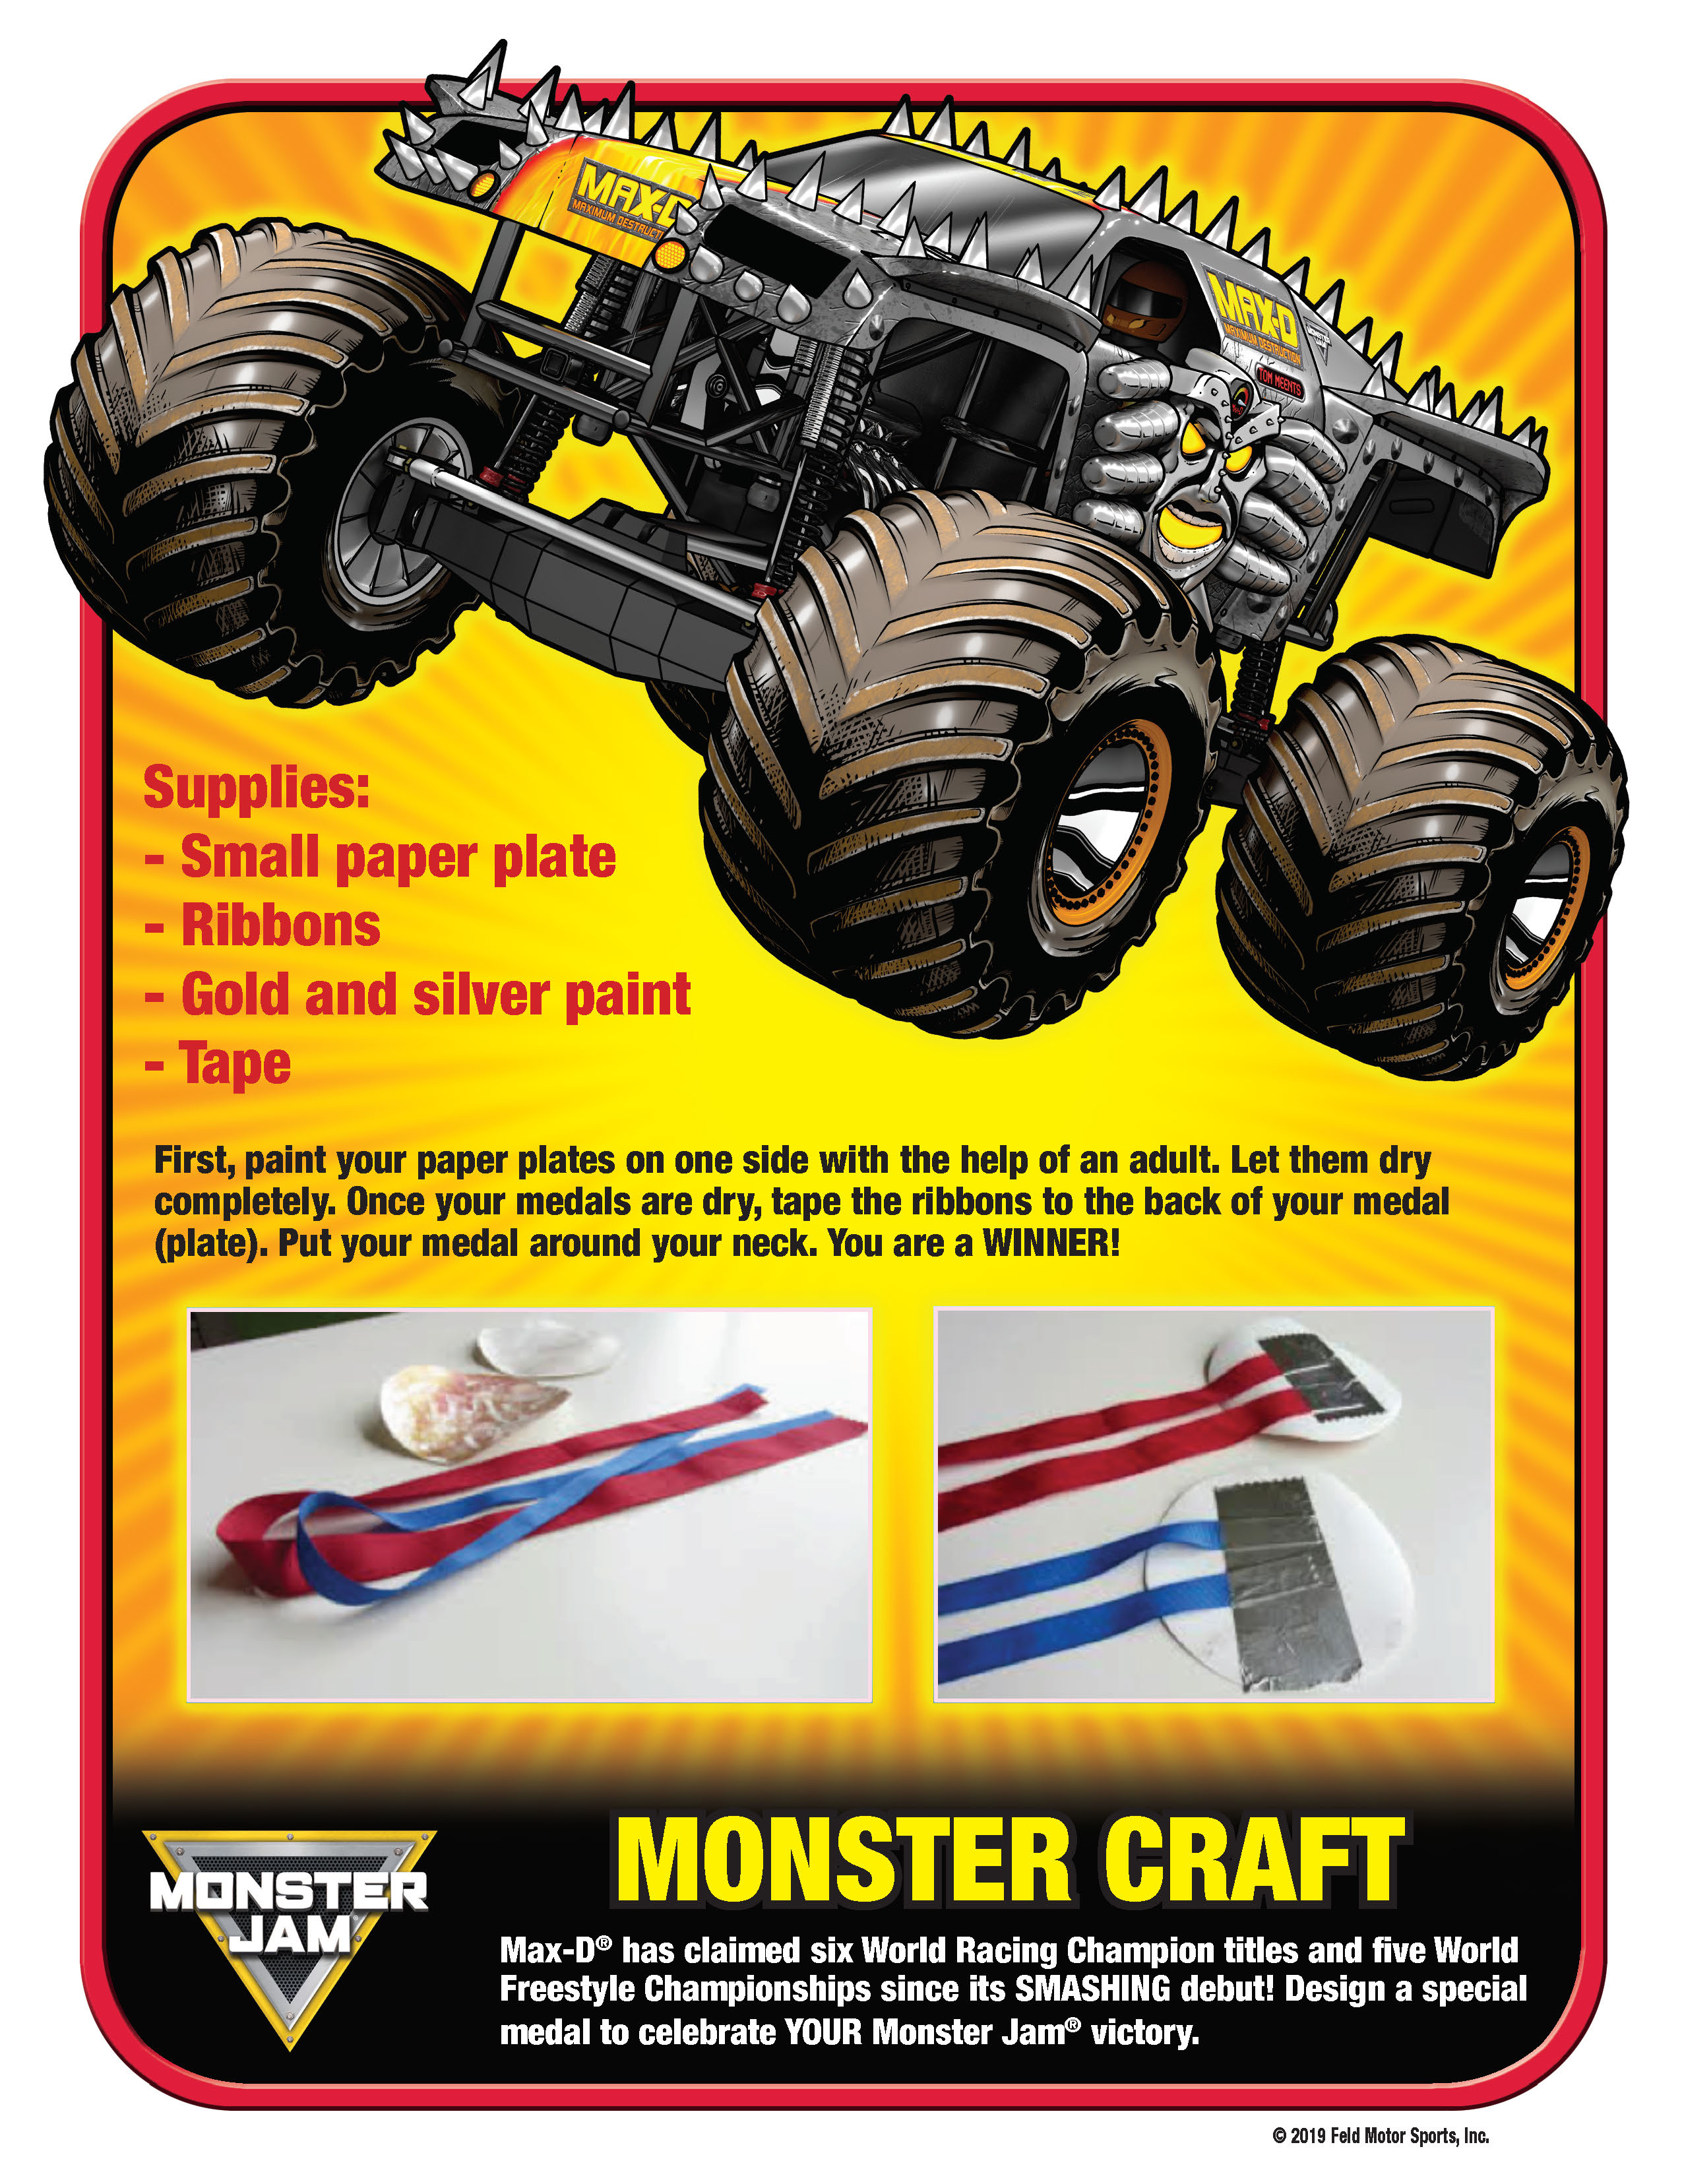 BUILD YOUR OWN MONSTER JAM MEDAL